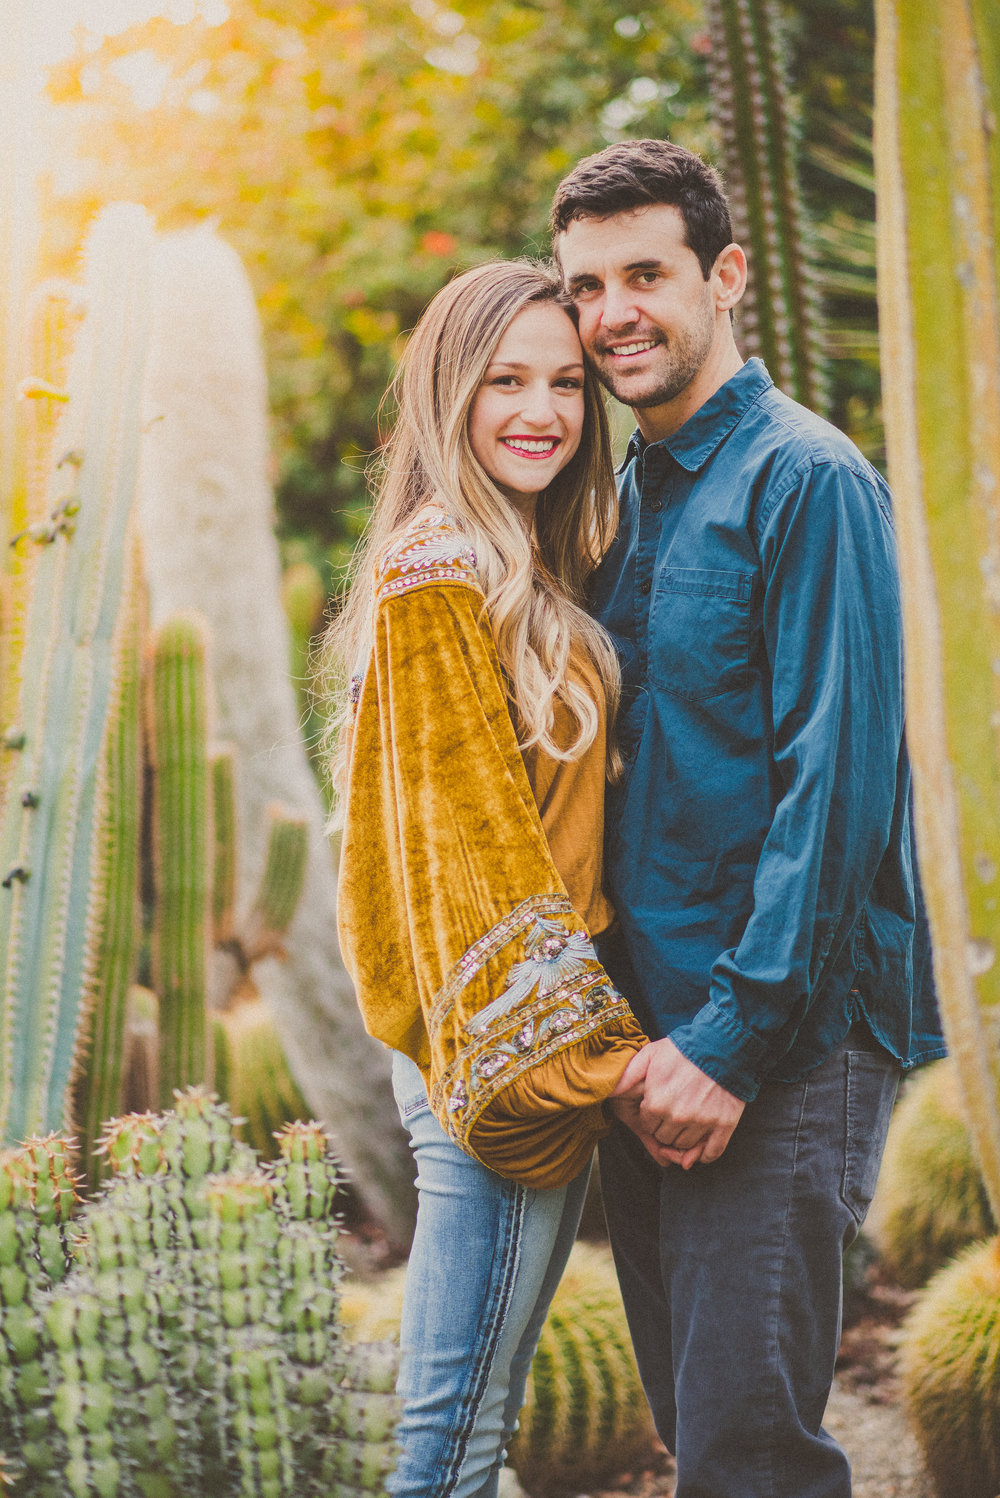 Heather & Forrest - Engagement Photos 2018-24.jpg